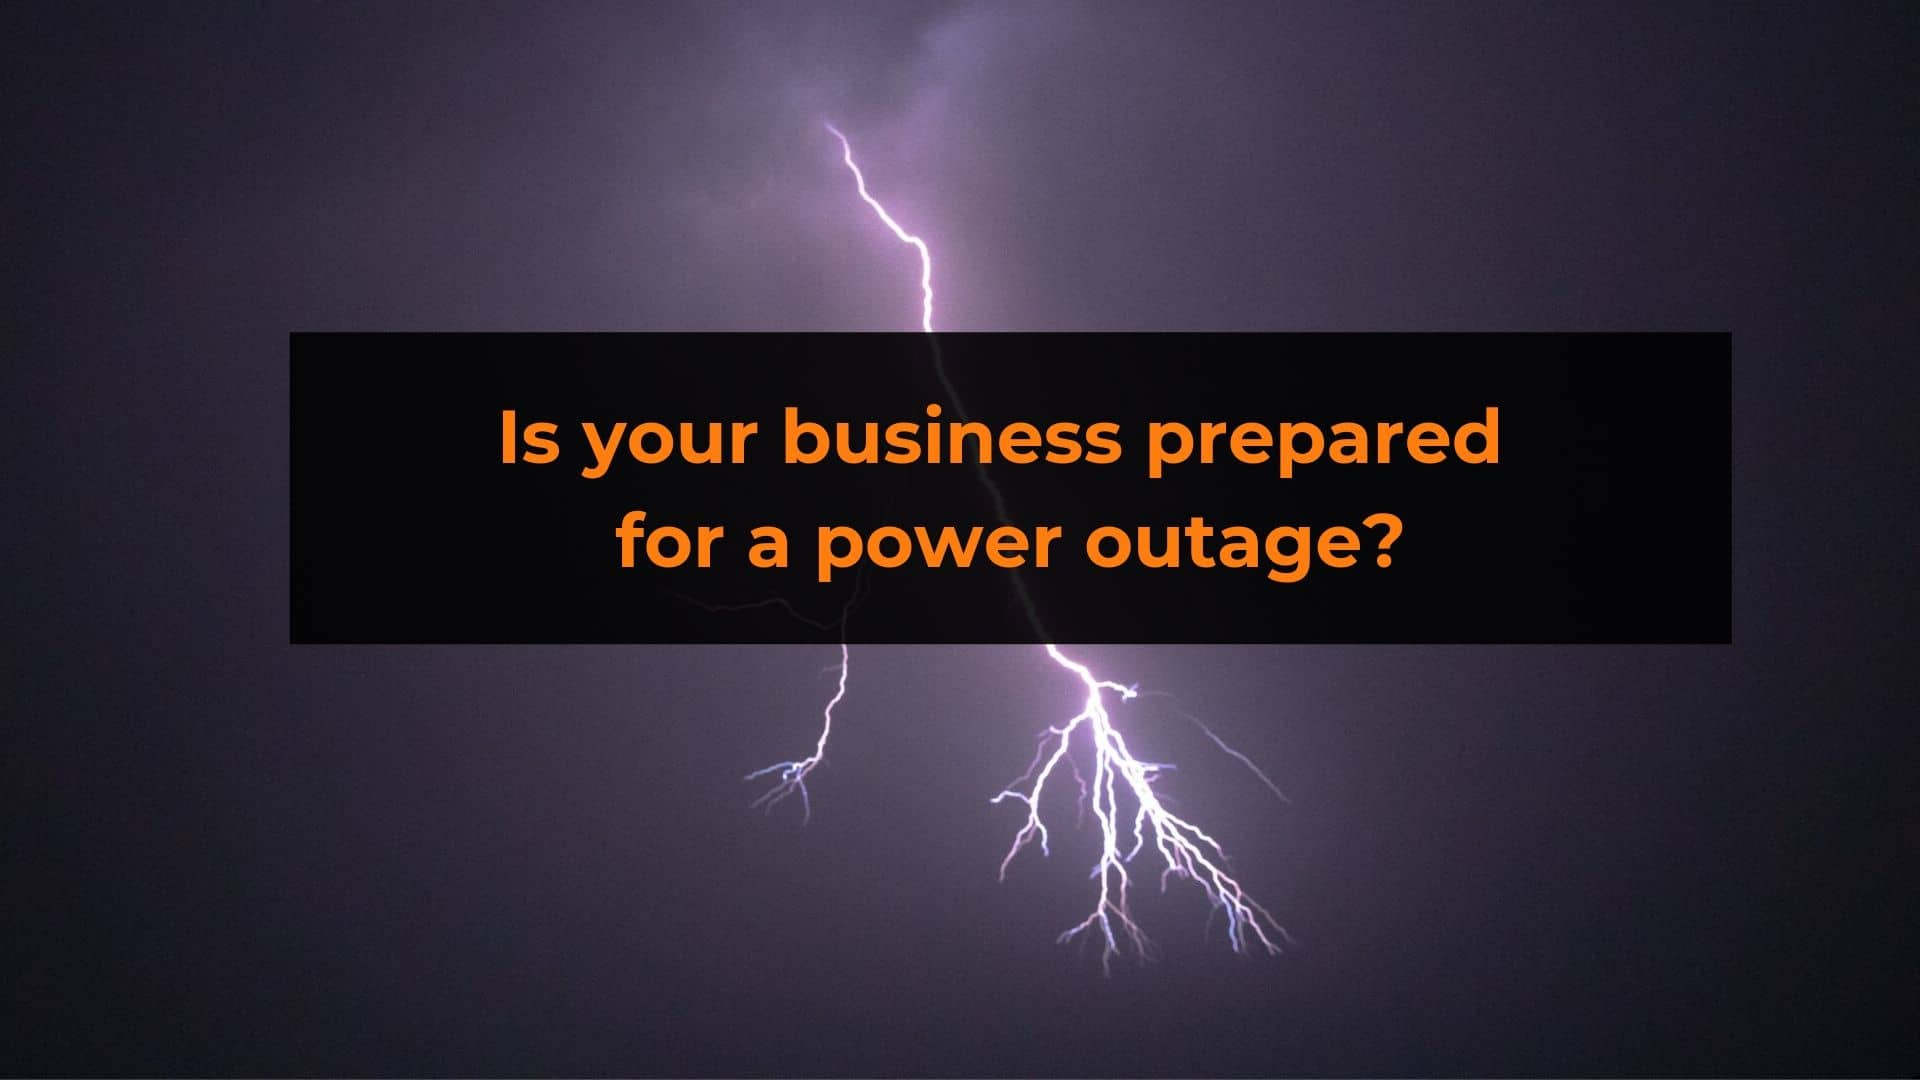 Uninterrupted Power Supplies are a simple solution for when power outages happen.